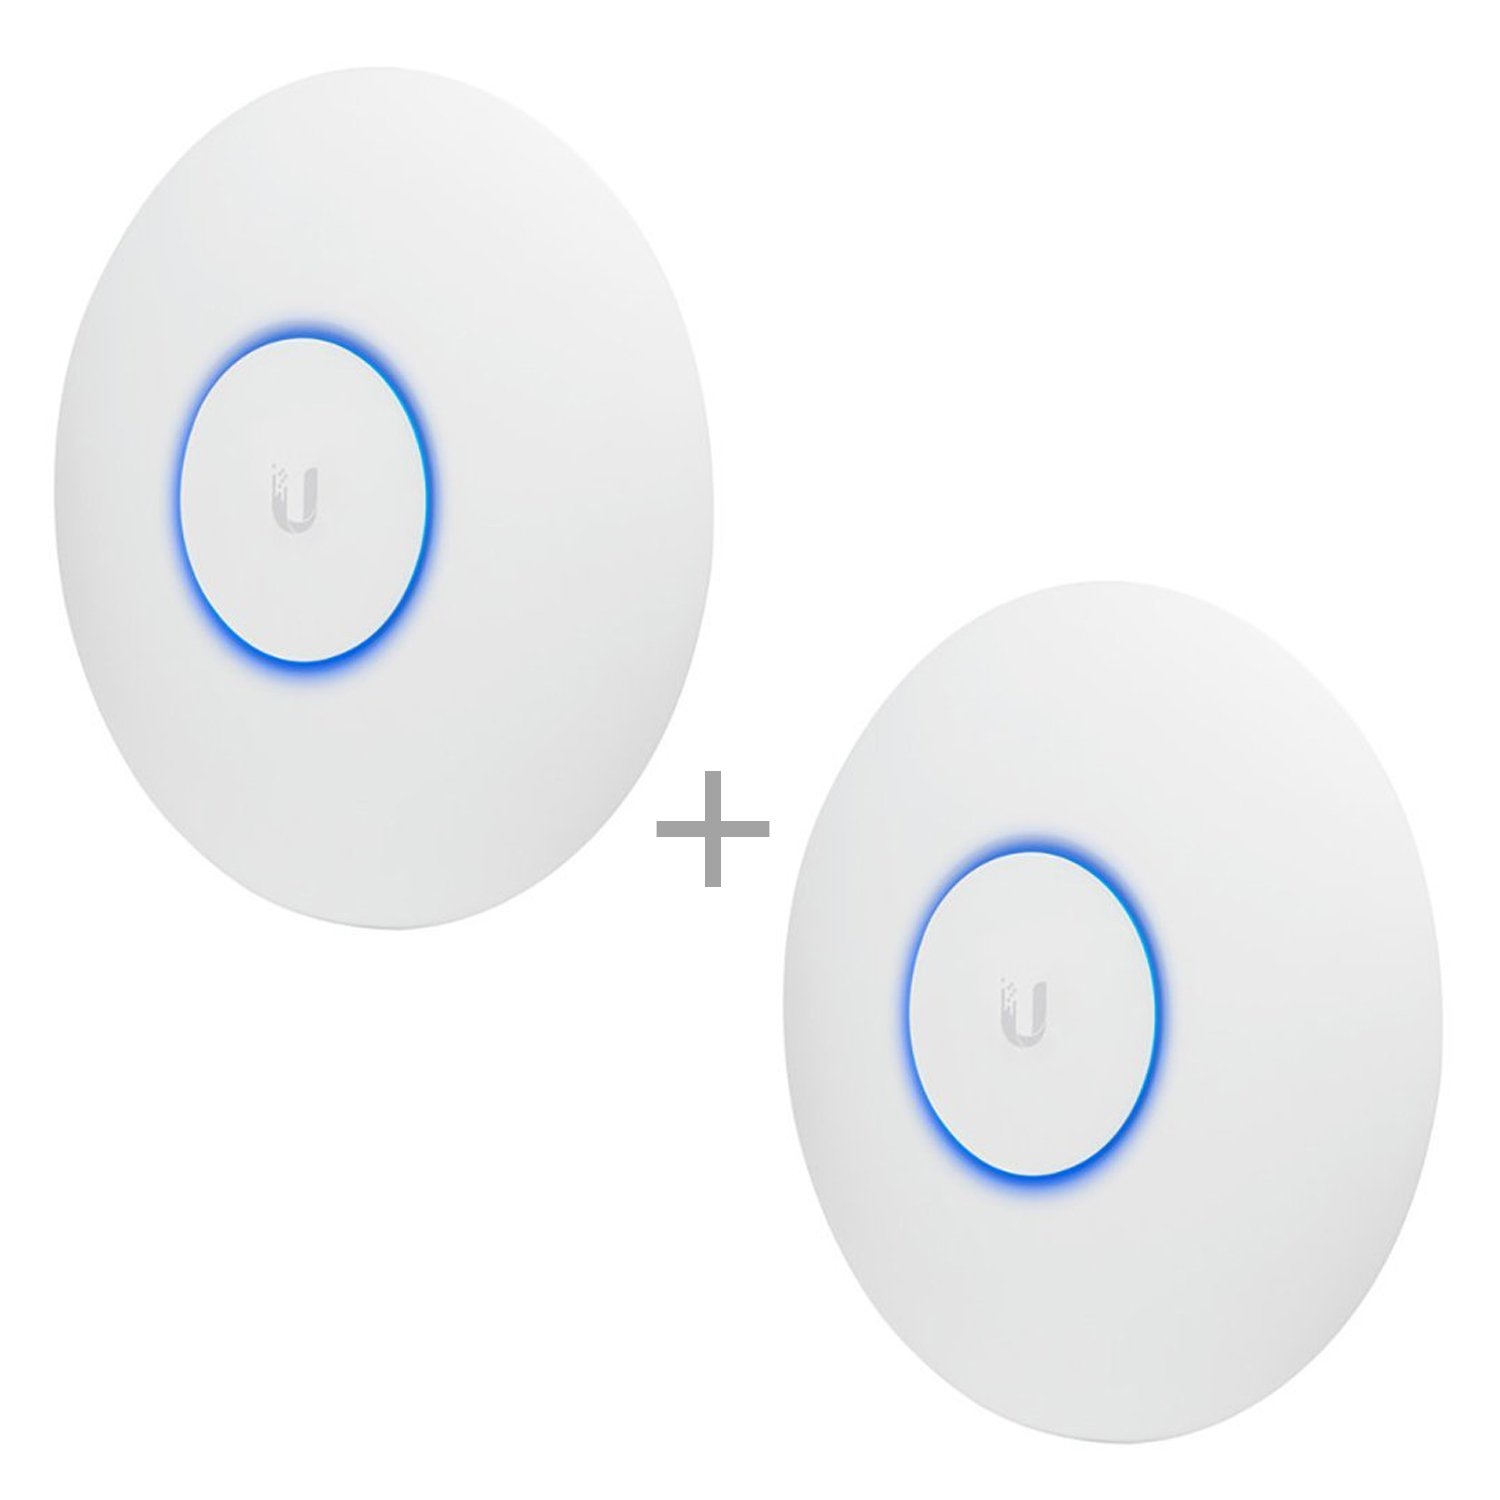 Ubiquiti Networks UAP-AC-PRO-E Access Point (No PoE Included In Box) 2-Pack Bundle by Ubiquiti Networks